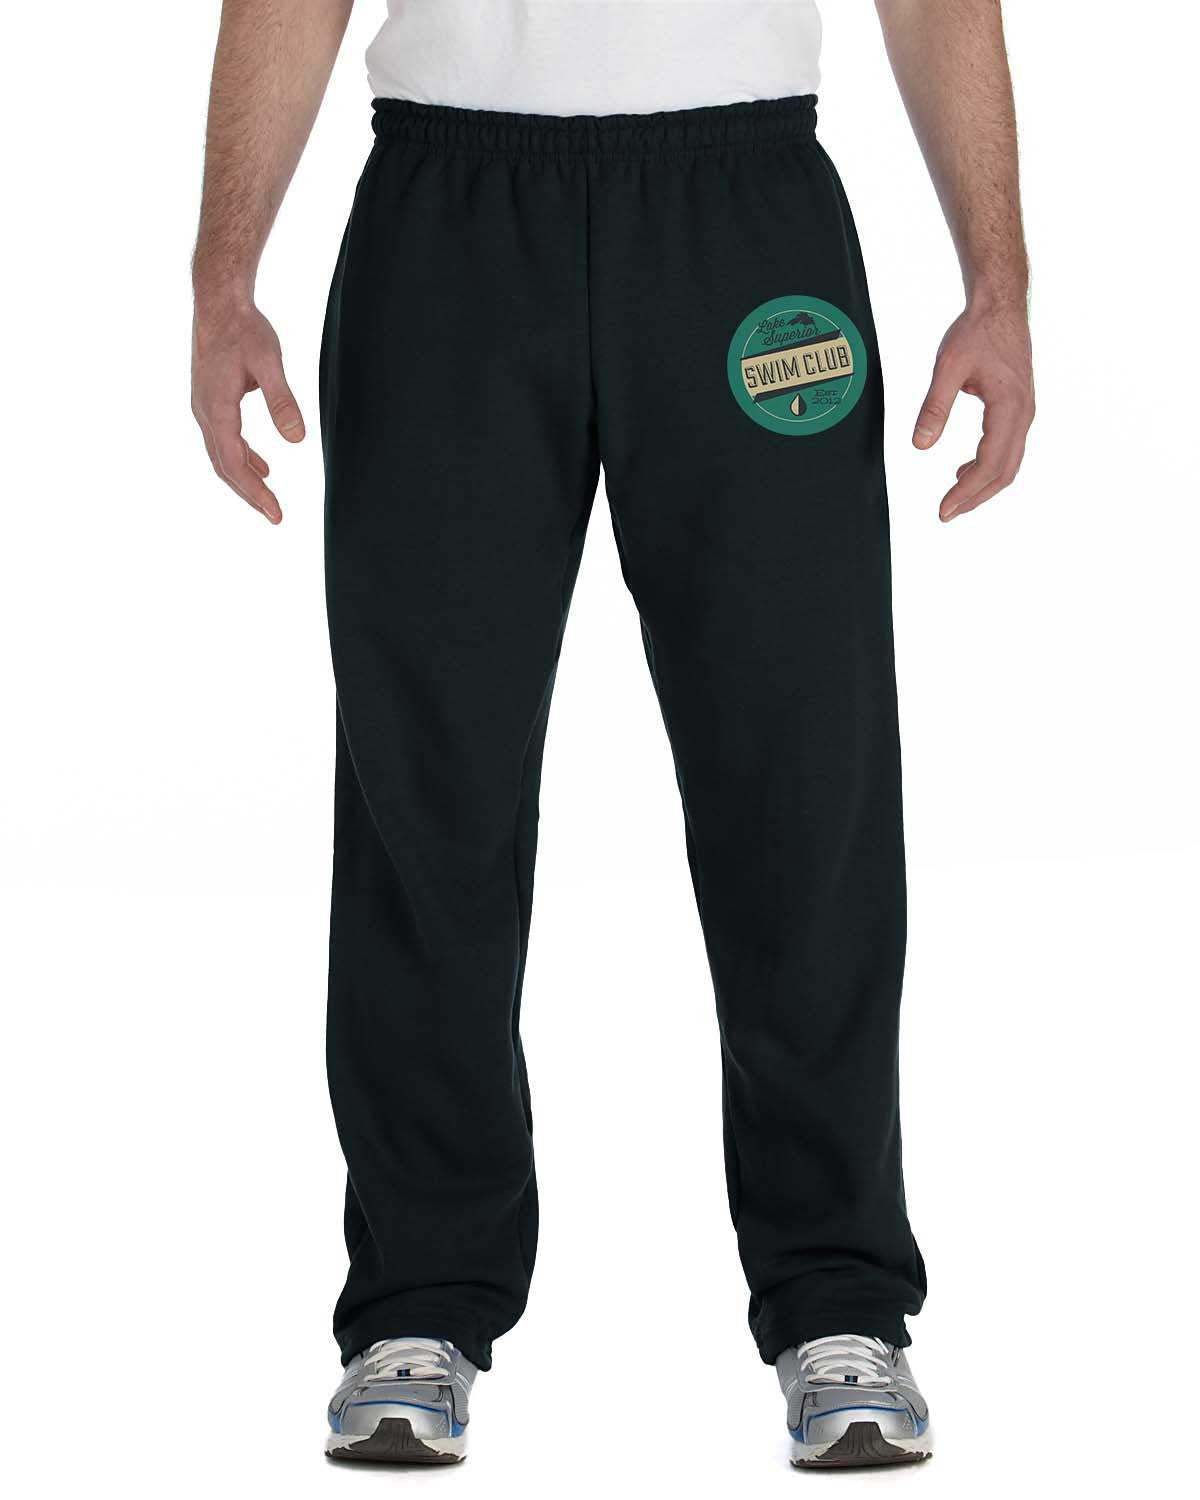 71605685d G184 Black Cotton Blend Sweatpants - Unisex – .